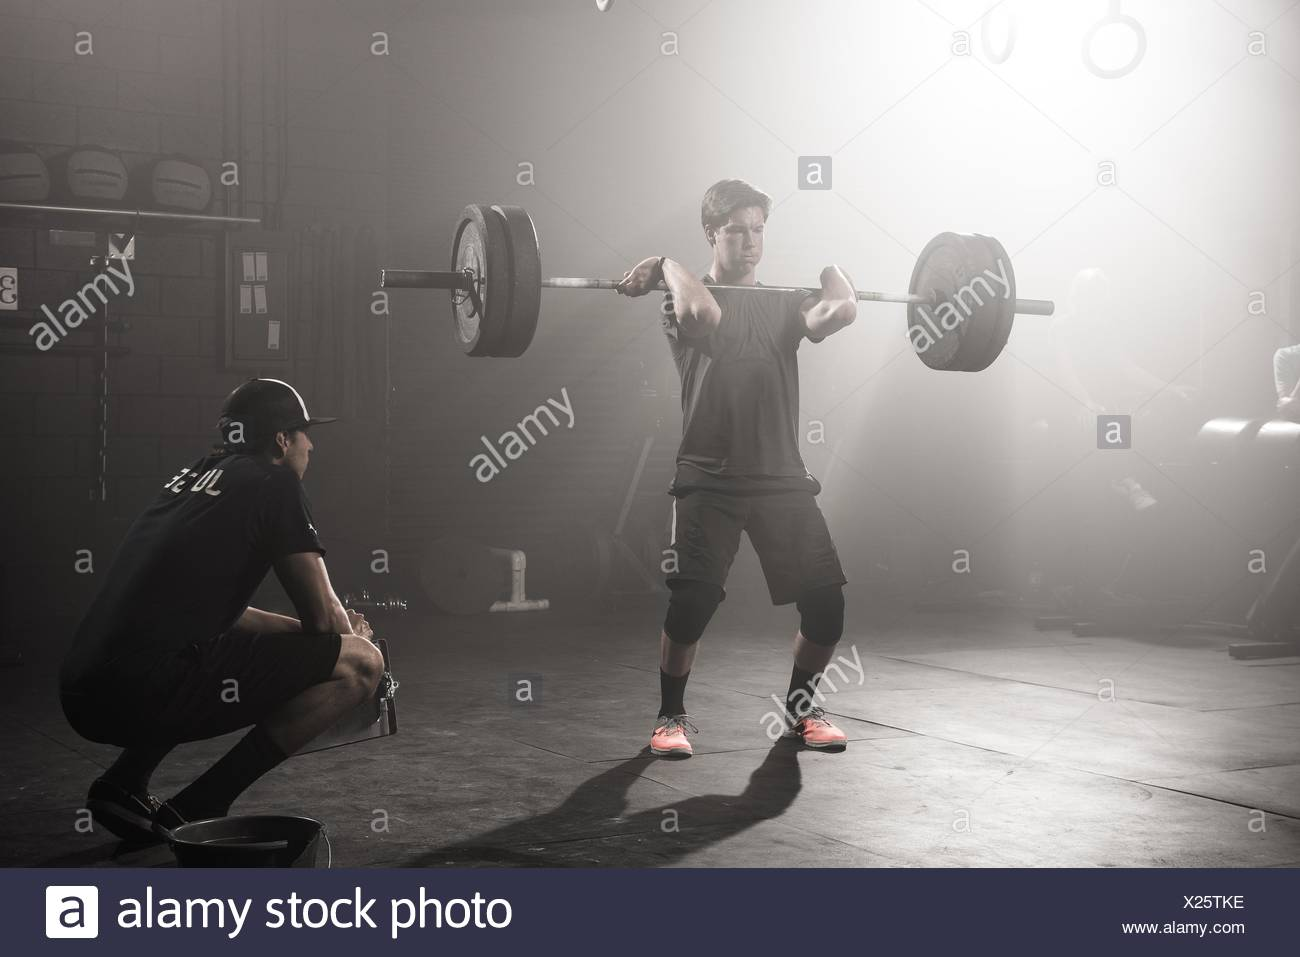 Young man lifting barbell while trainer looks on - Stock Image